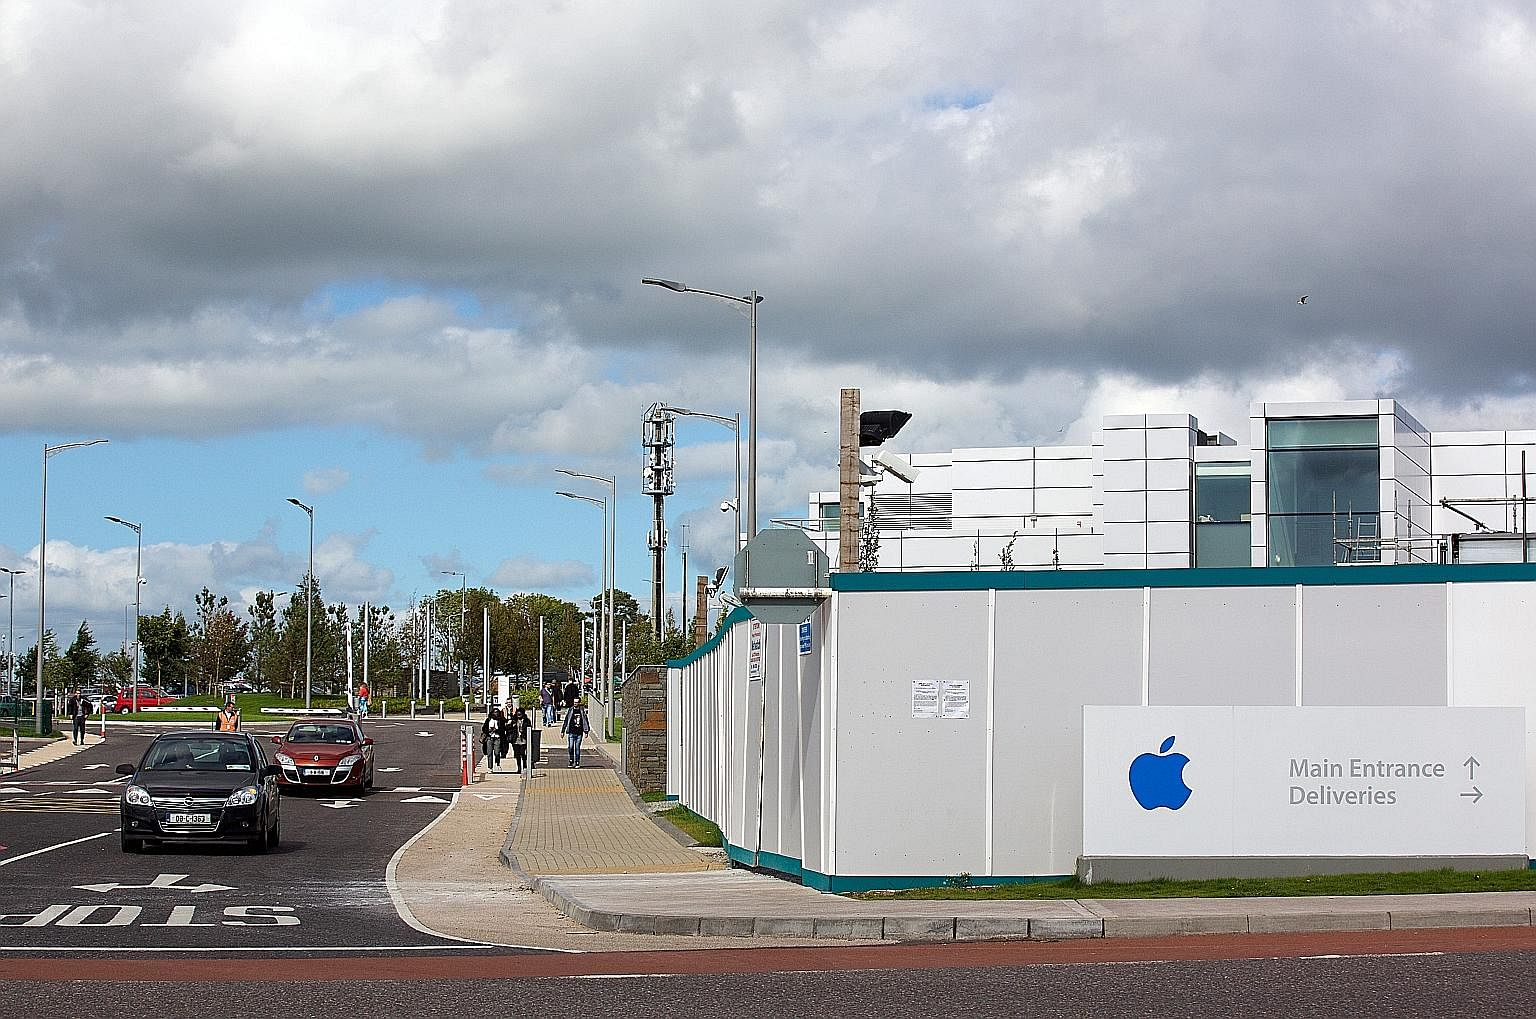 Apple's campus in Cork, Ireland. The global giant had been attributing billions of dollars in profits to a phantom head office in Ireland, allowing it to pay a tax rate of 1 per cent or lower.